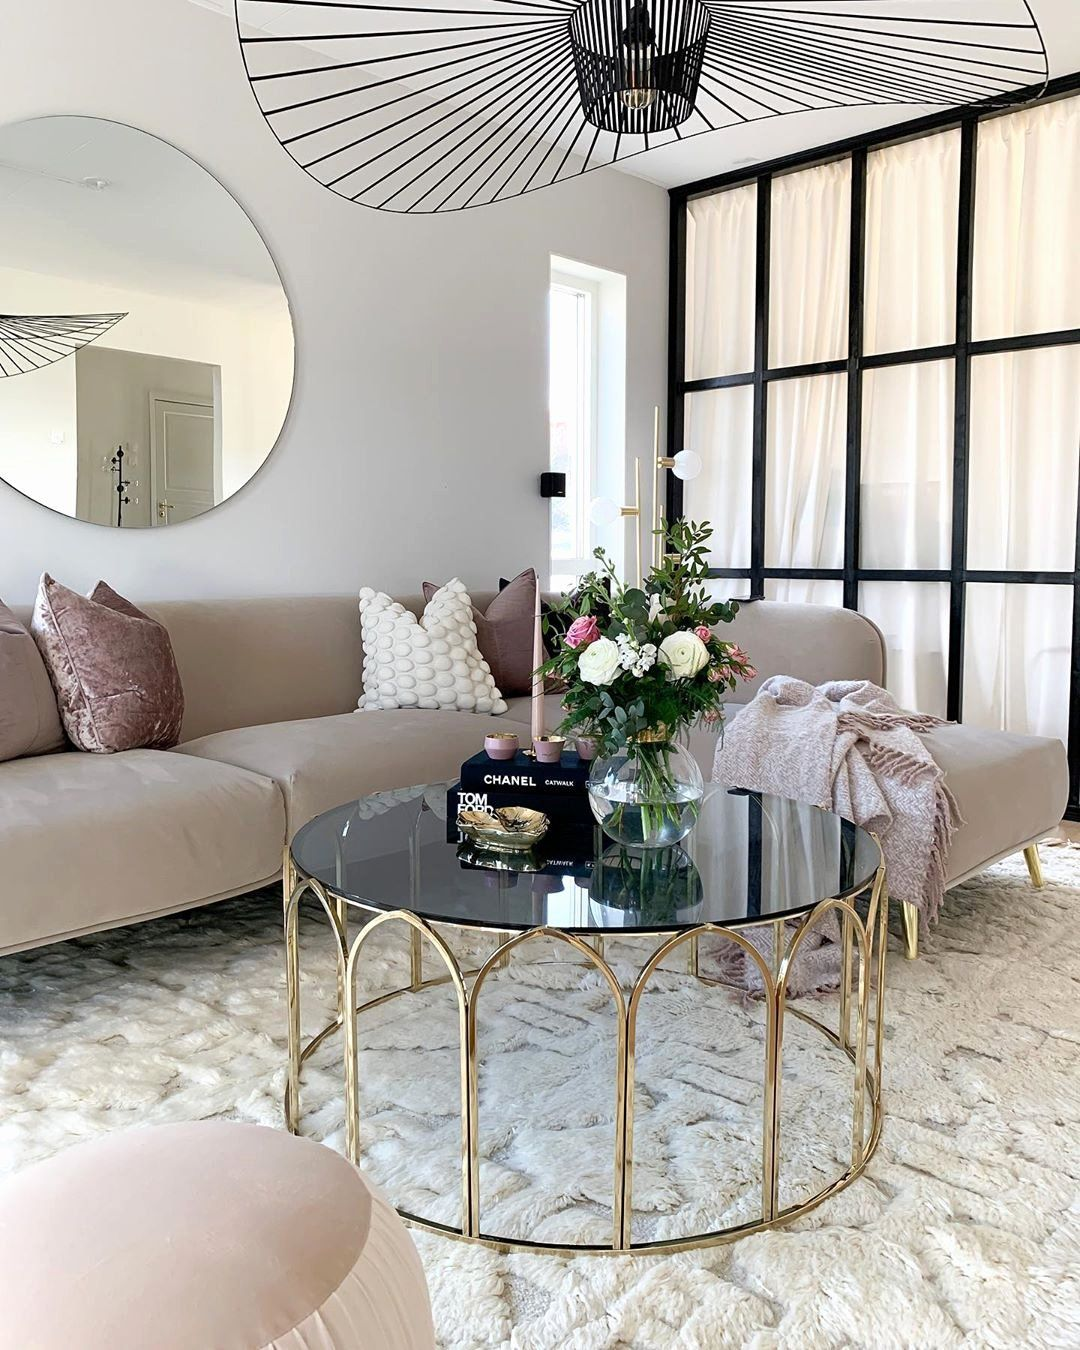 Living Room Table Inspirational 10 Round Coffee Tables For The Living Room You Ll Love In 2020 Gold Living Room Decor Gold Living Room Round Coffee Table Living Room Gold table living room